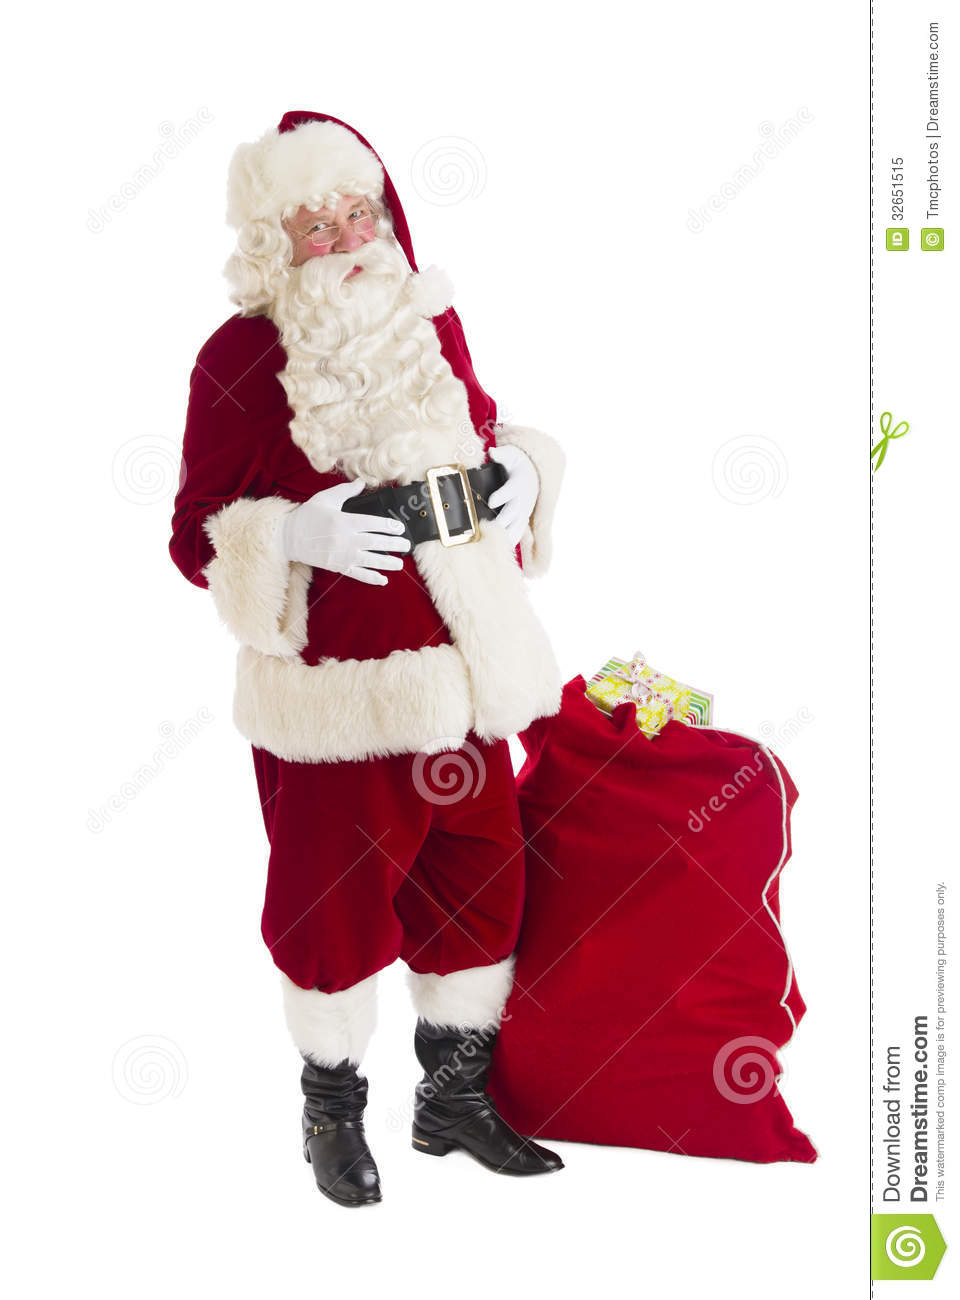 Santa claus standing with bag full of gifts royalty free